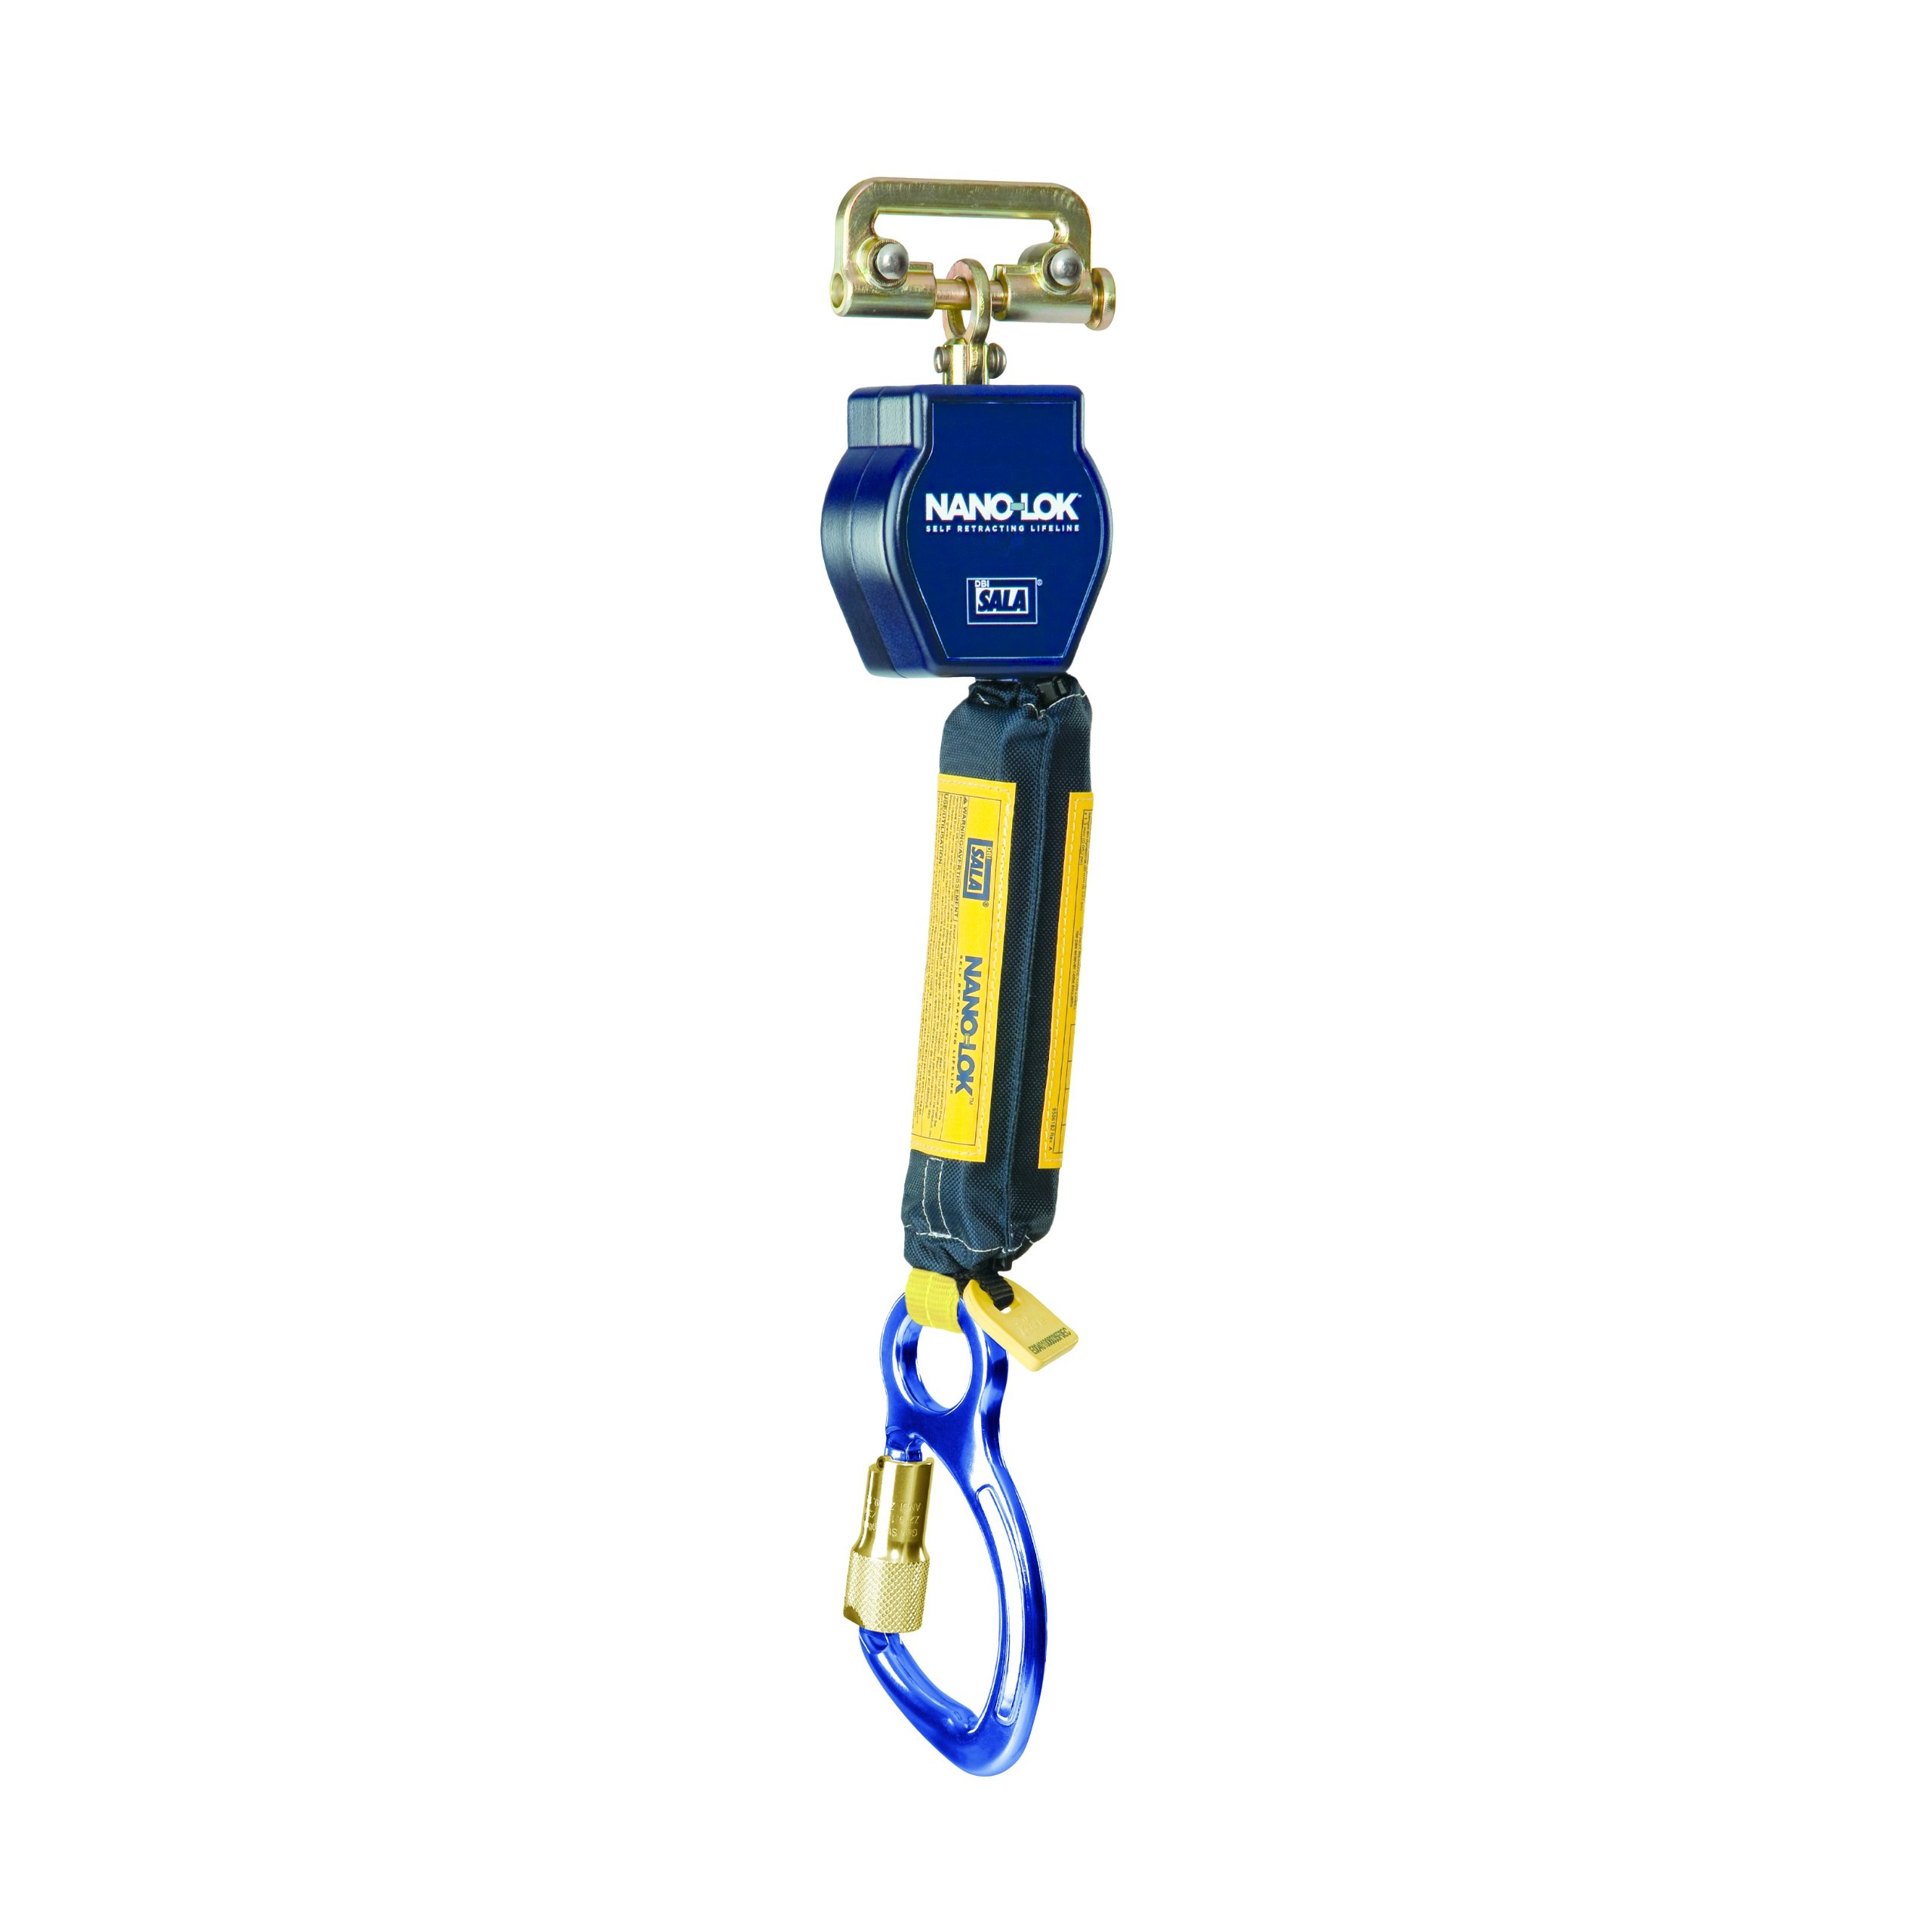 3M DBI-SALA Nano-Lok 3101225 SRL, 6', 3/4'' Dyneema Polyester Web, Aluminum Carabiner, Quick Connector for Harness Mounting, Navy/Yellow by 3M Personal Protective Equipment